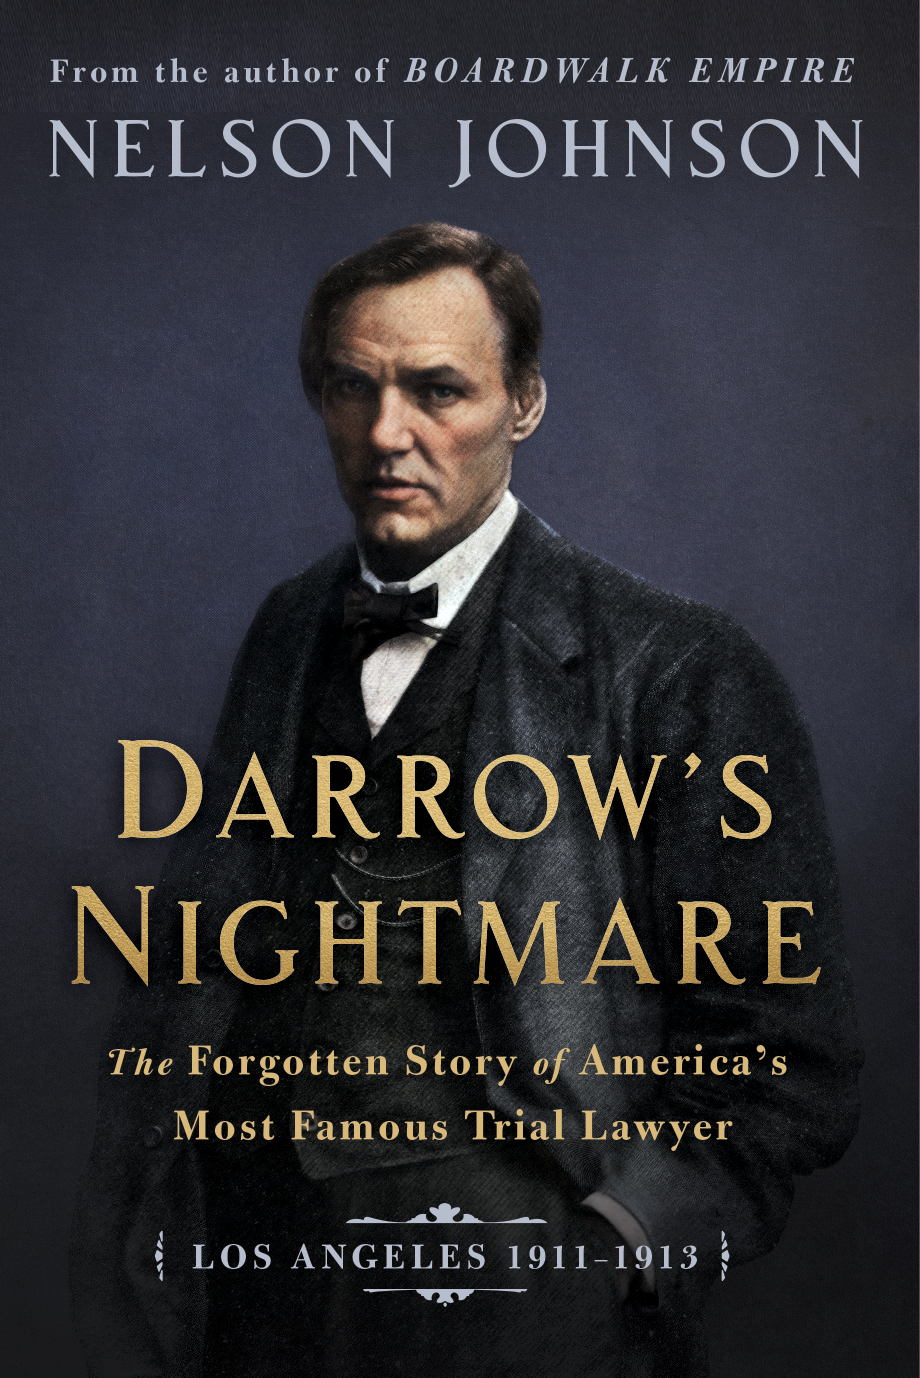 """""""Darrow's Nightmare"""" book cover, with Darrow , alone, in a suit and bow tie, looking at the reader"""